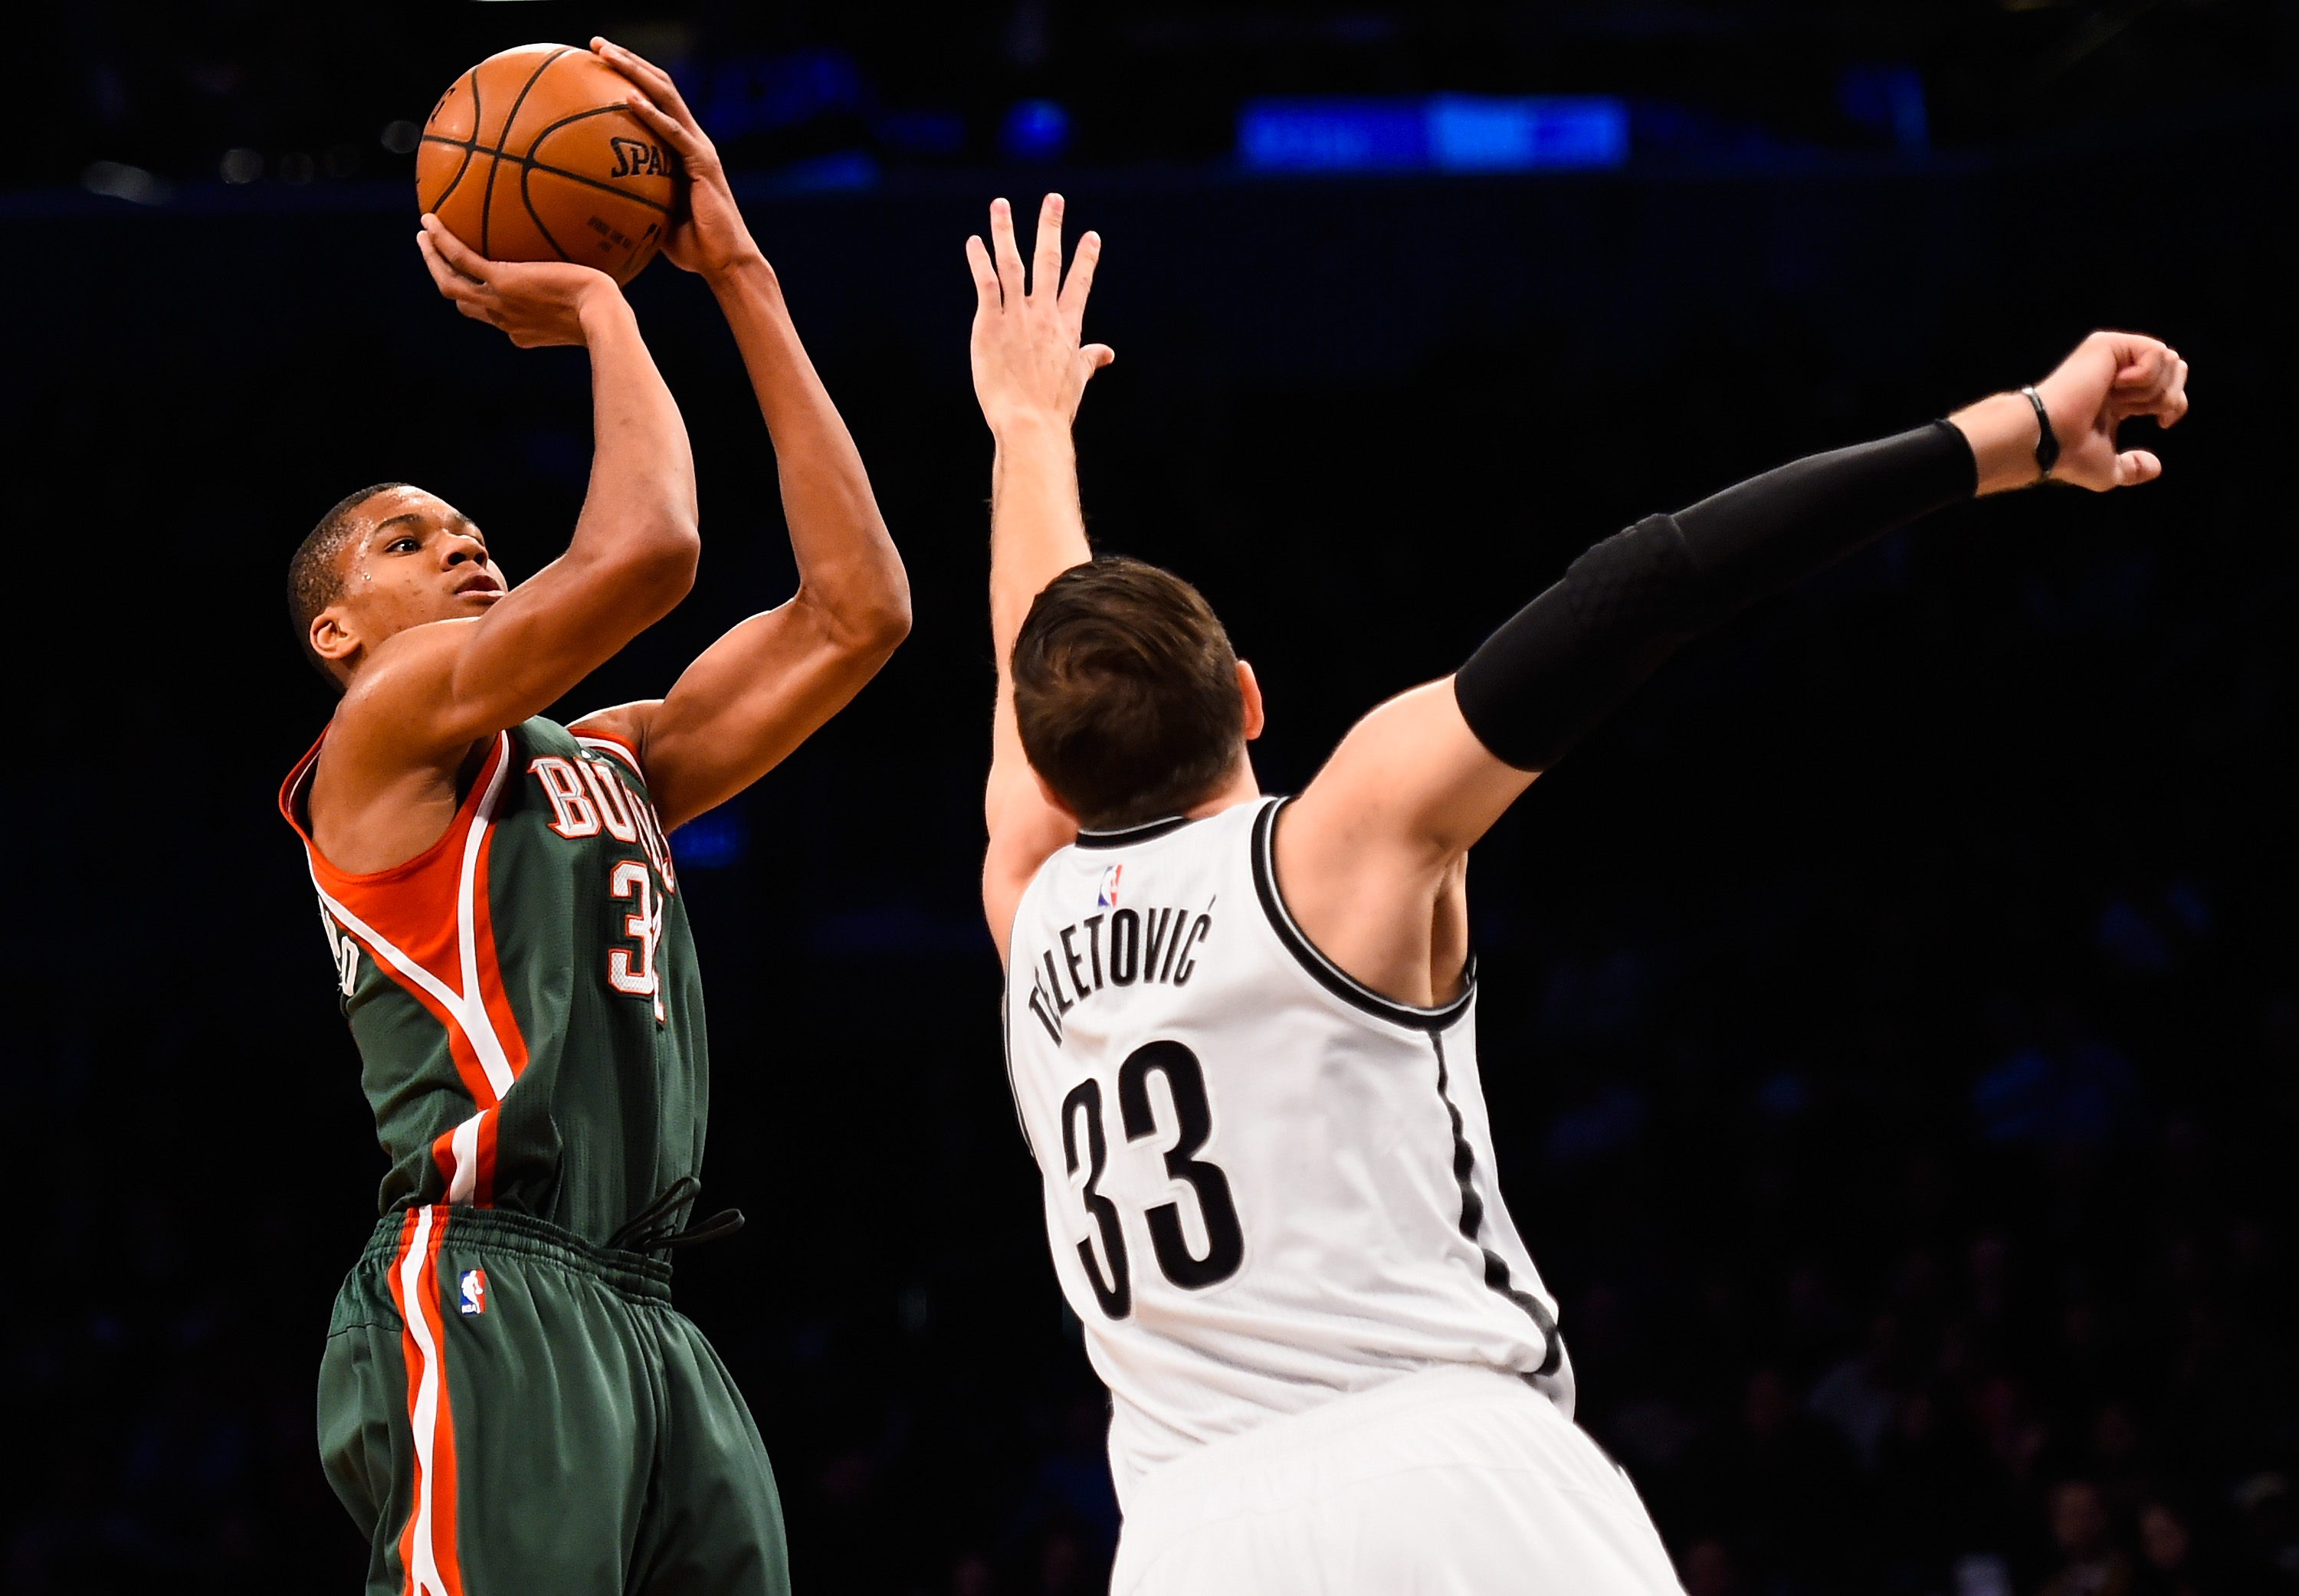 Why did the Boston Celtics pass on Giannis Antetokounmpo in the 2013 NBA draft?